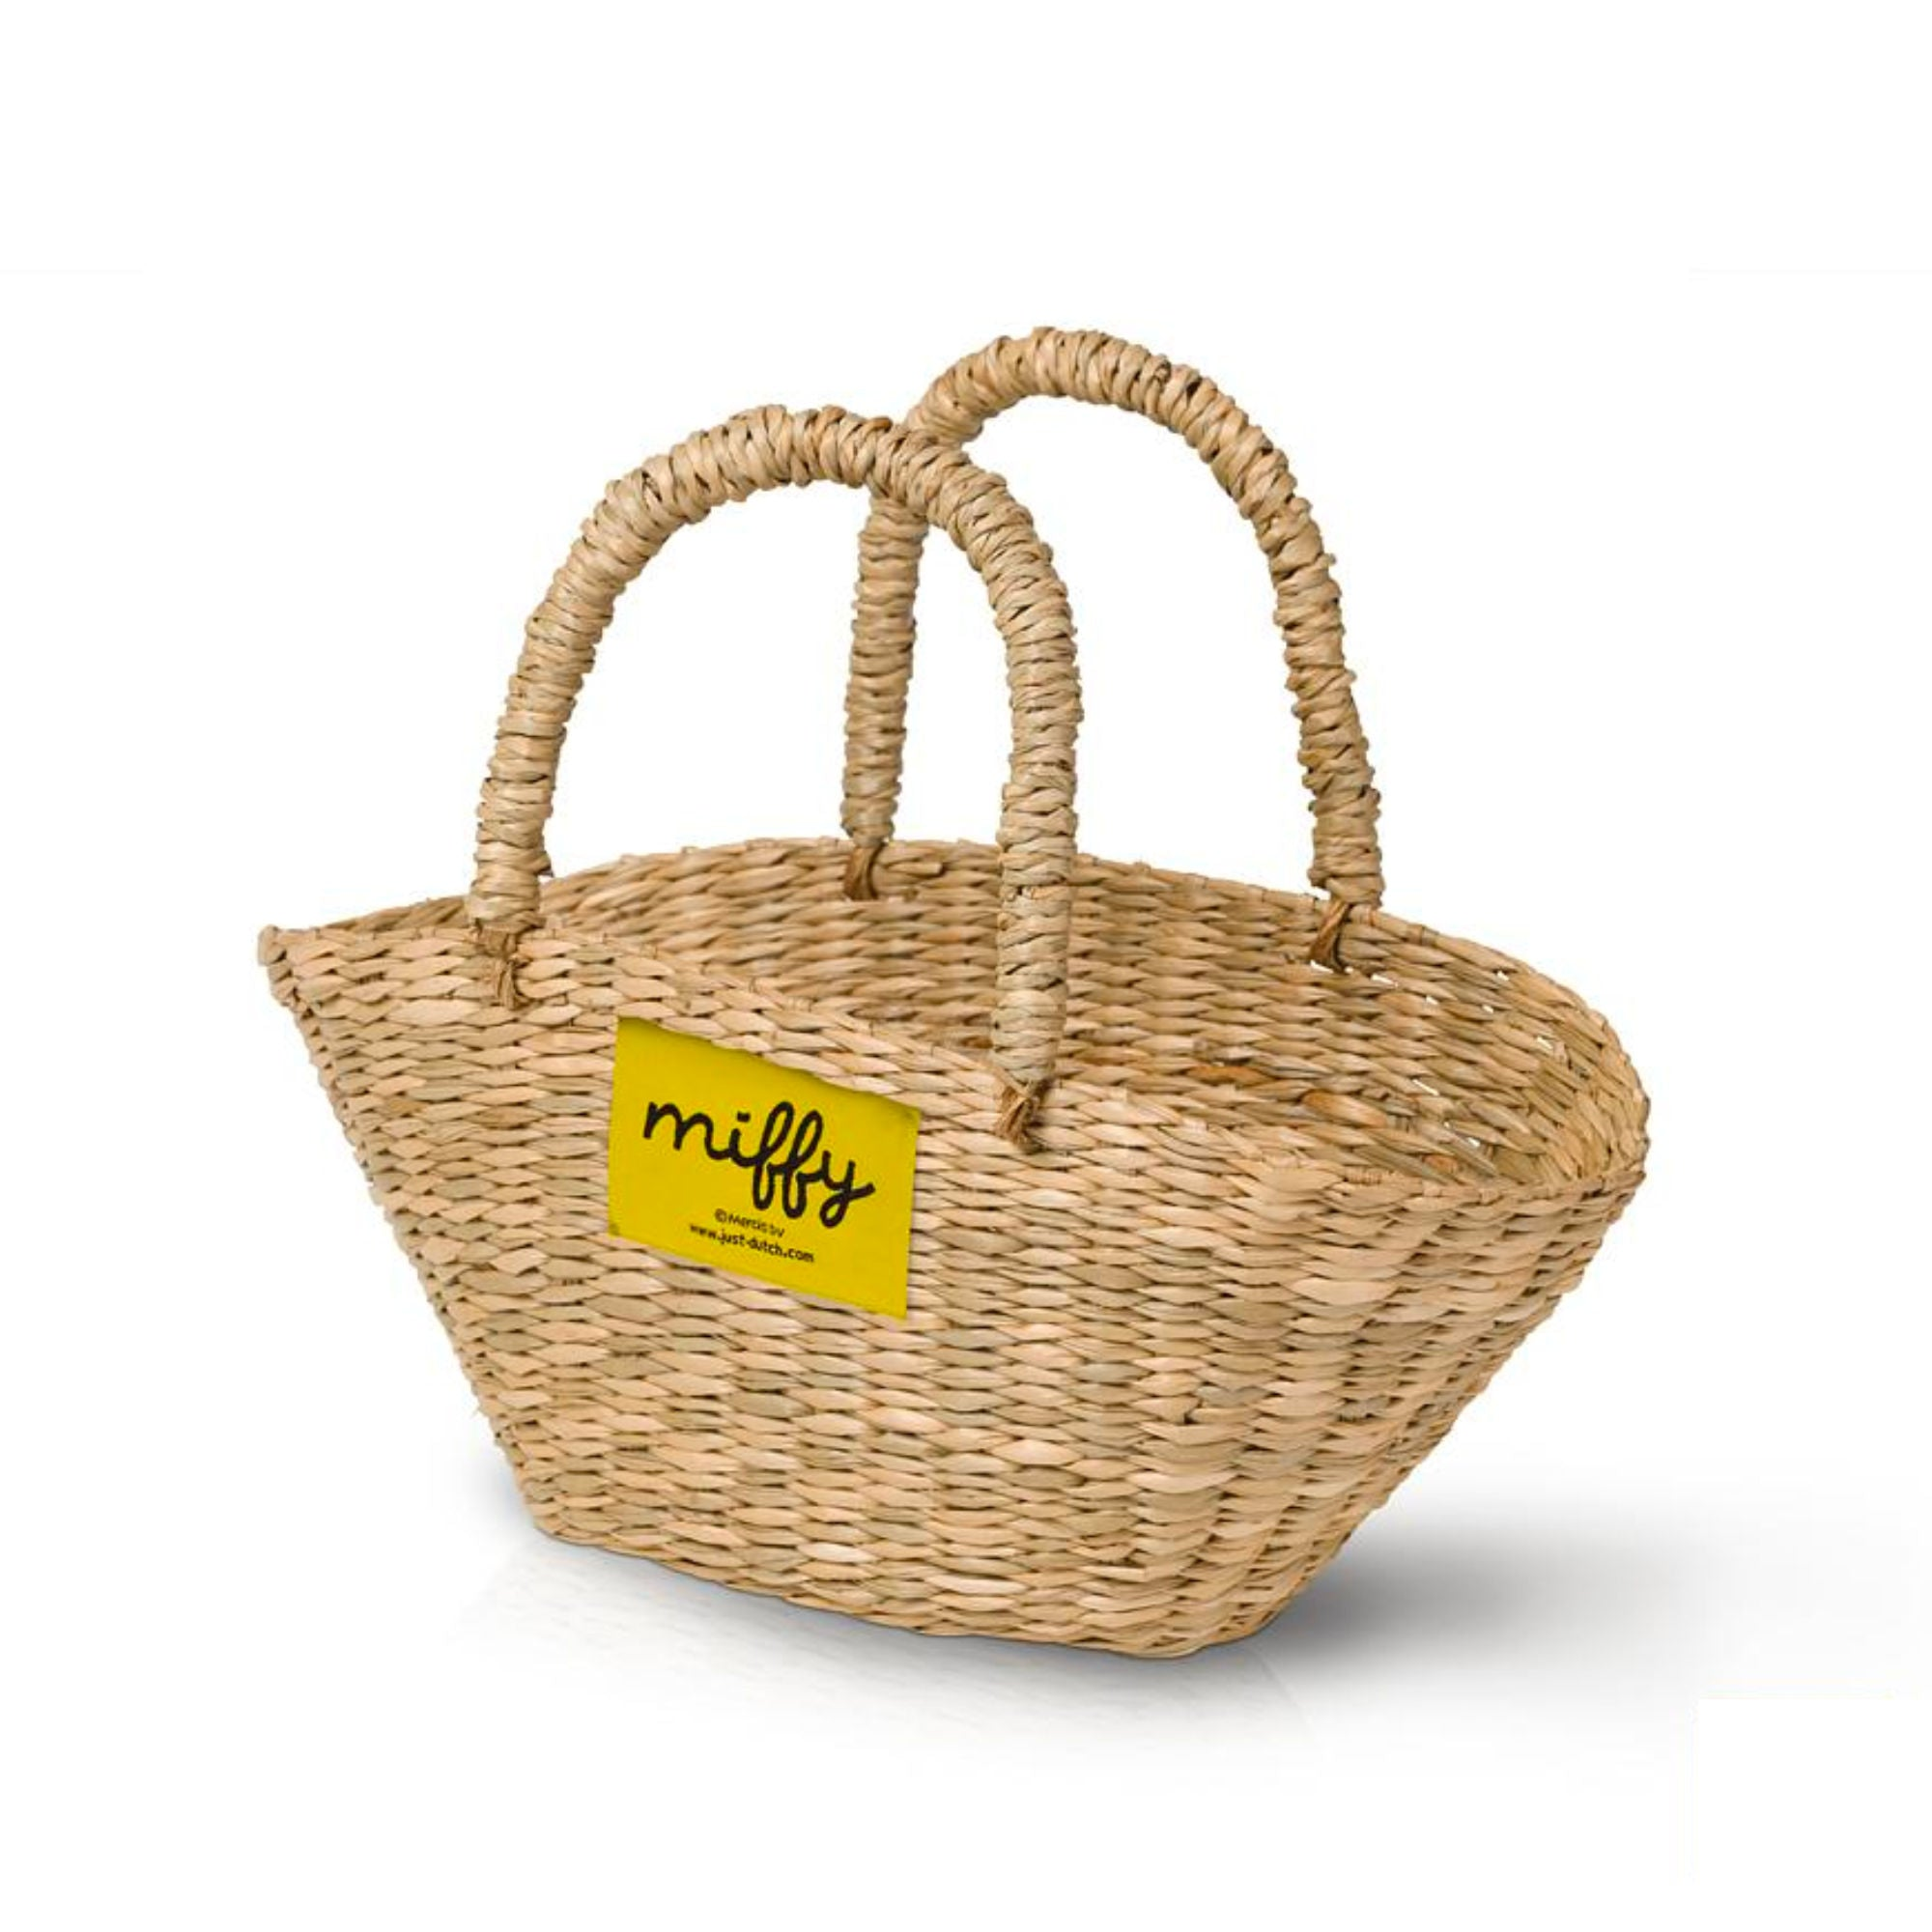 Just Dutch Handmade Natural Basket For Miffy Dolls